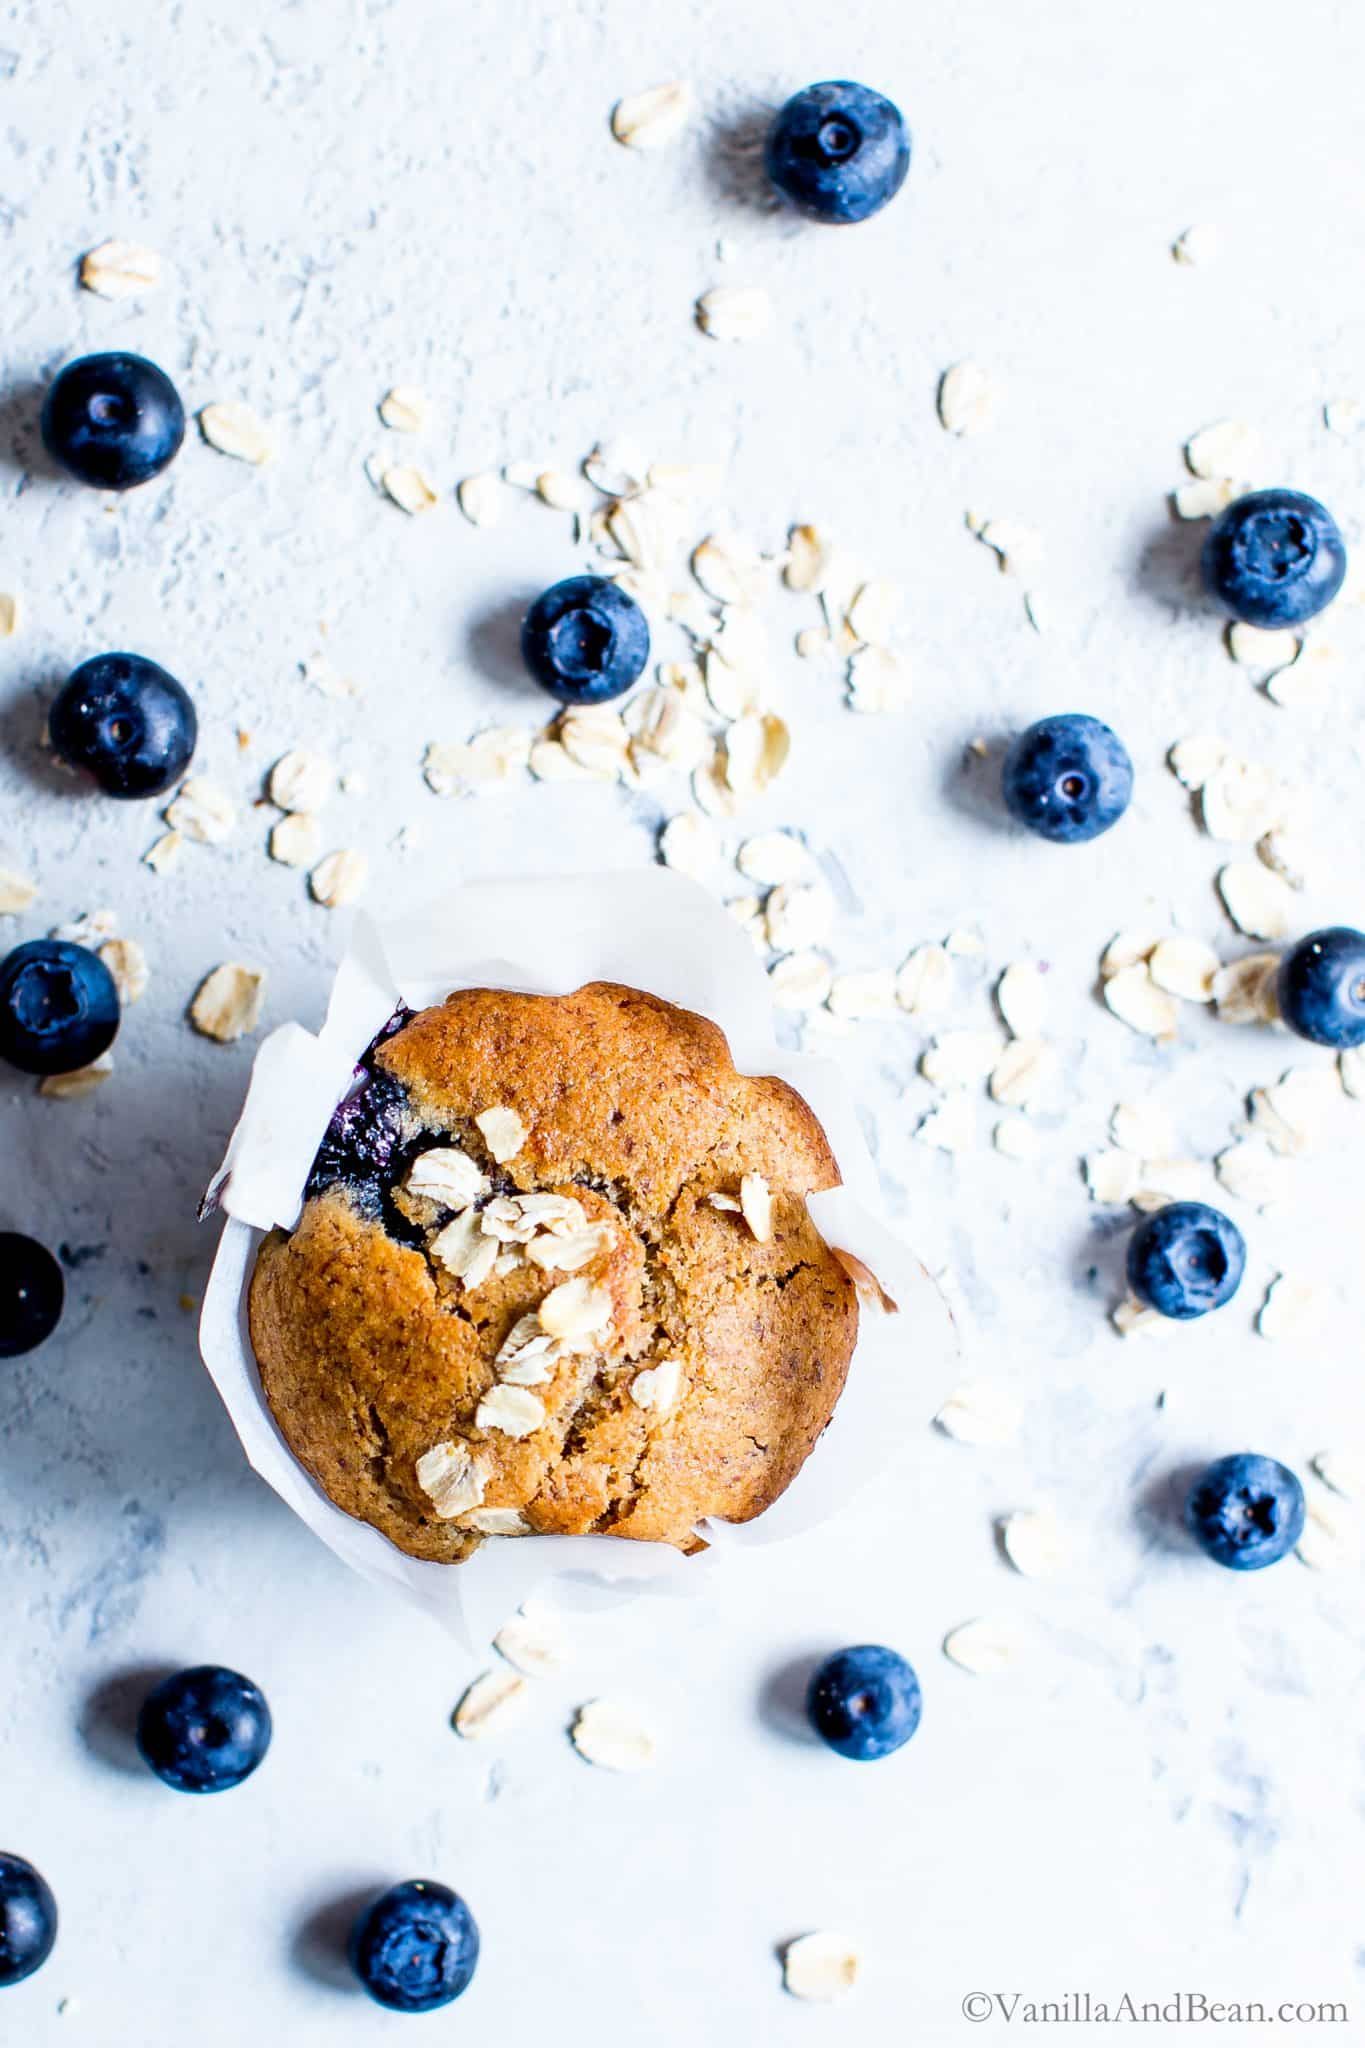 Overhead shot of naturally sweetened Blueberry-Oat Flax Muffin